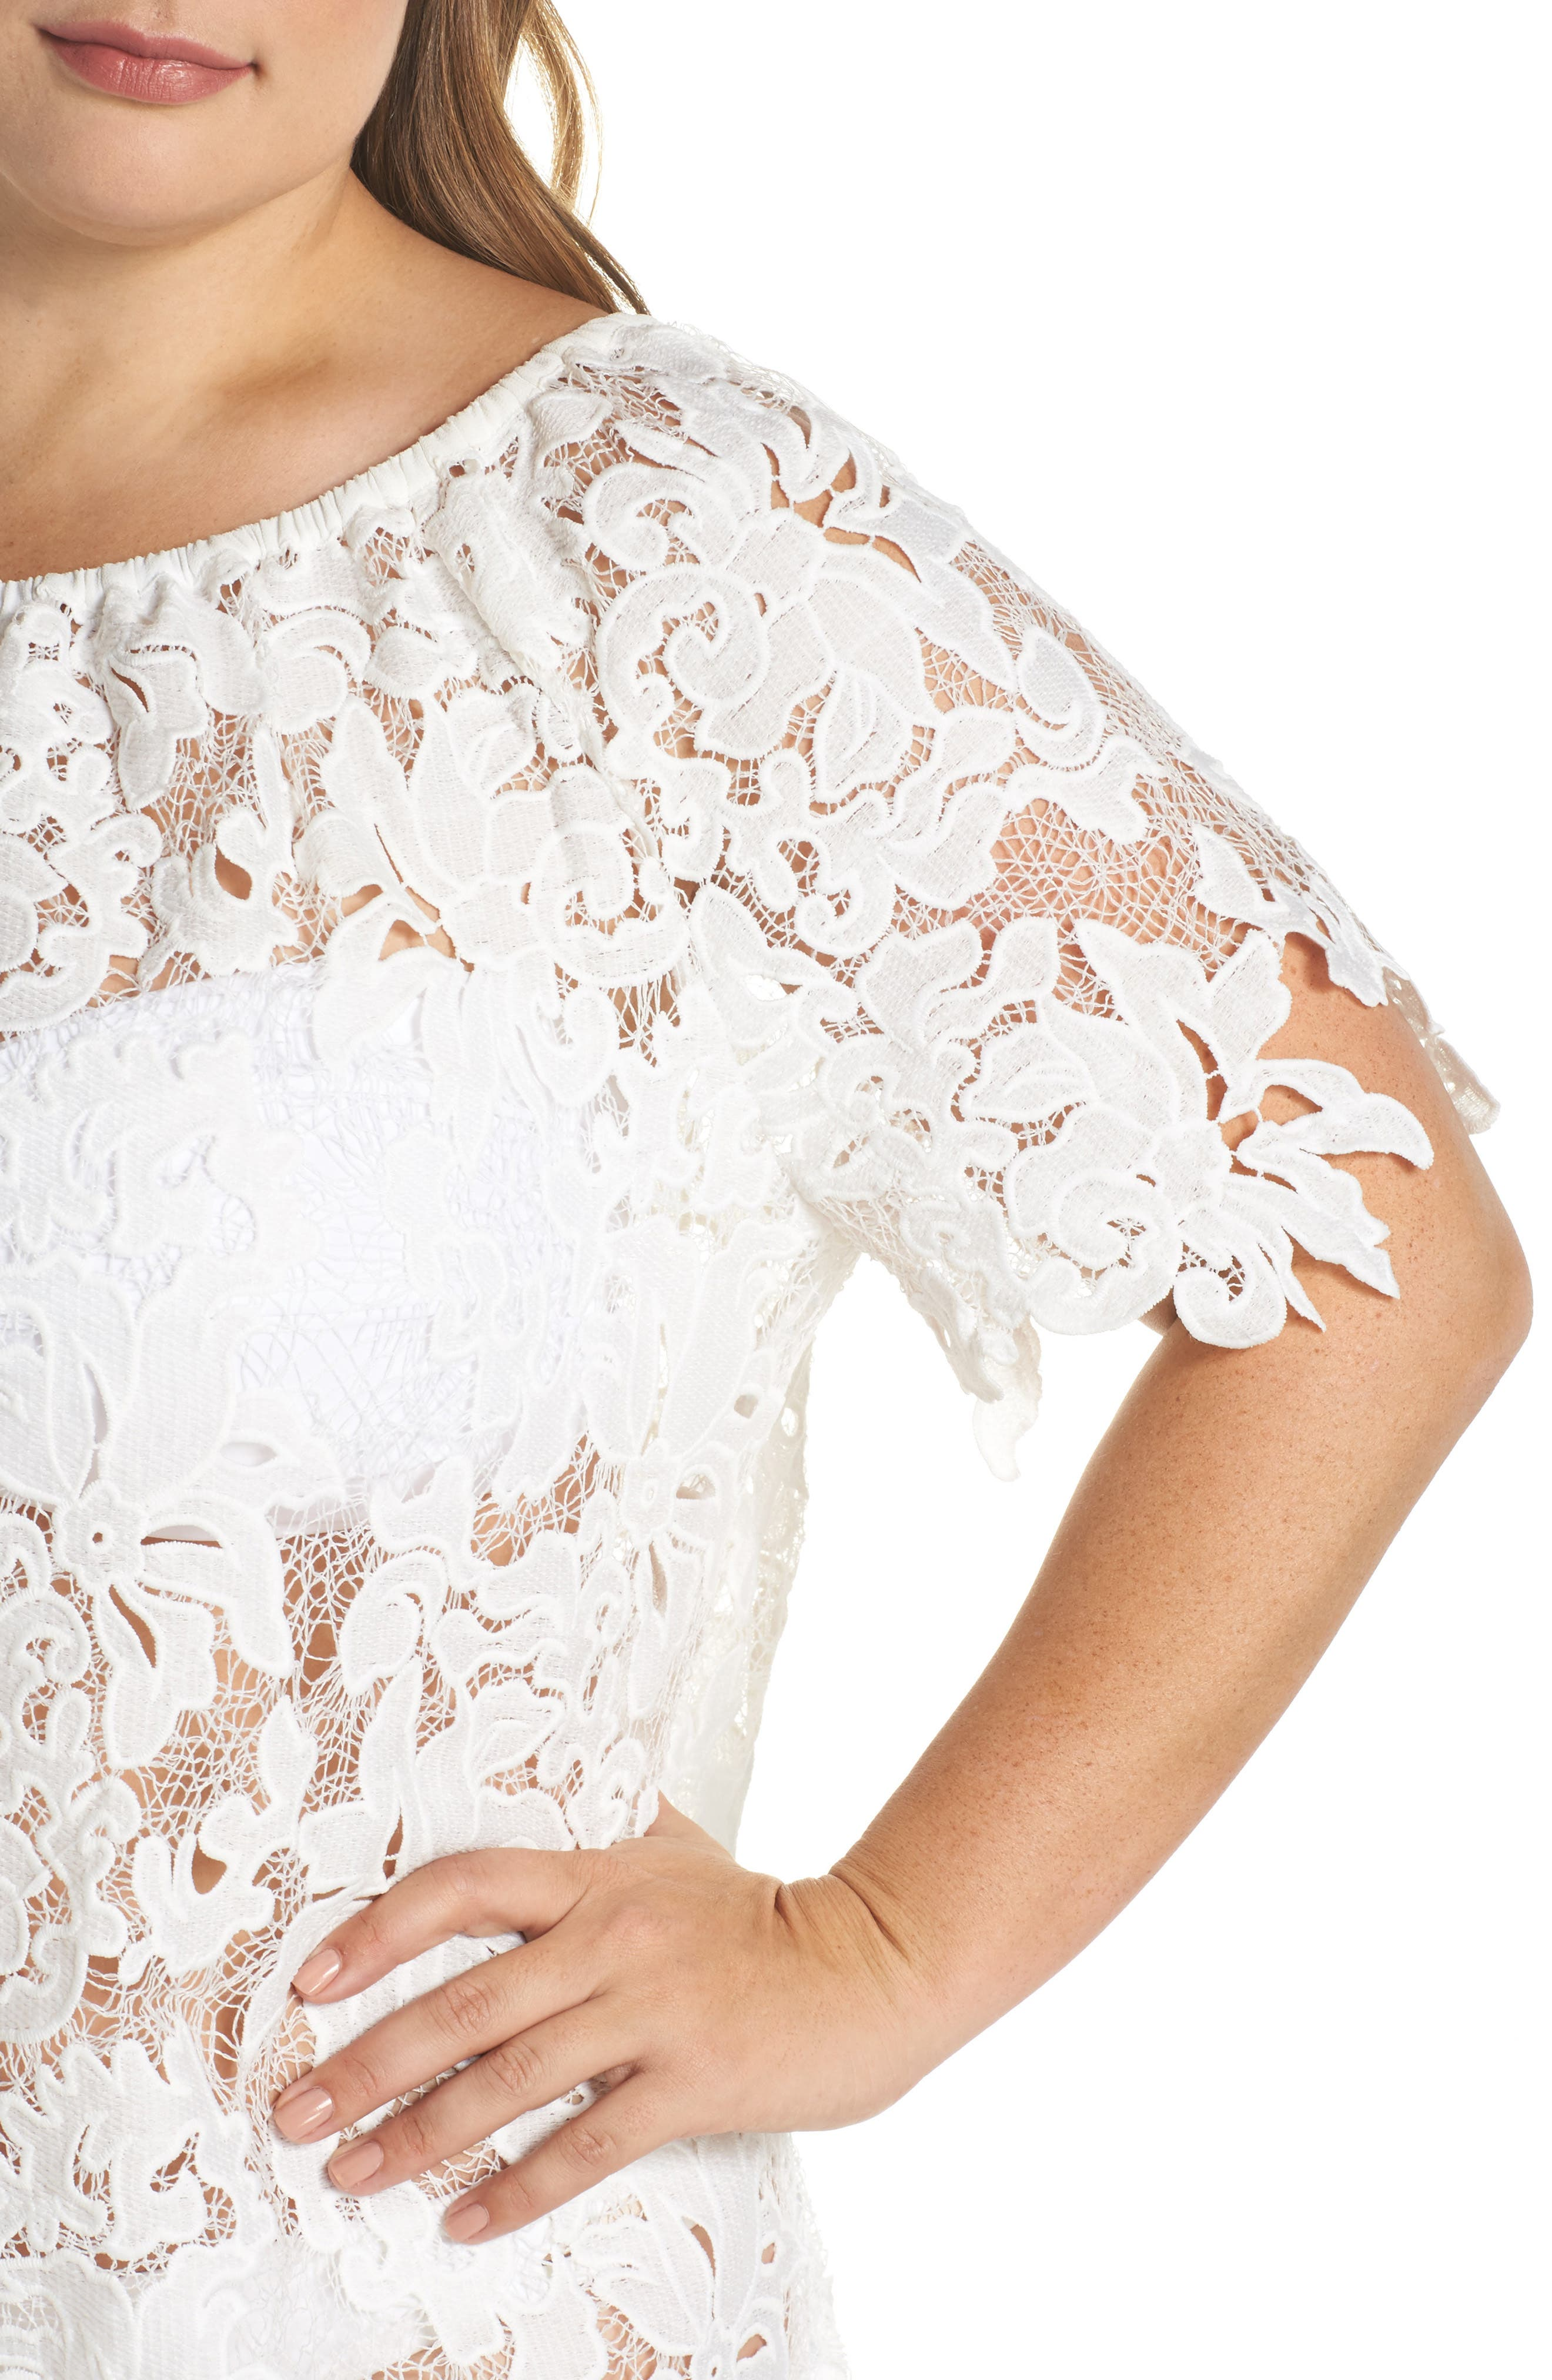 Ode Lace Cover-Up Dress,                             Alternate thumbnail 4, color,                             100